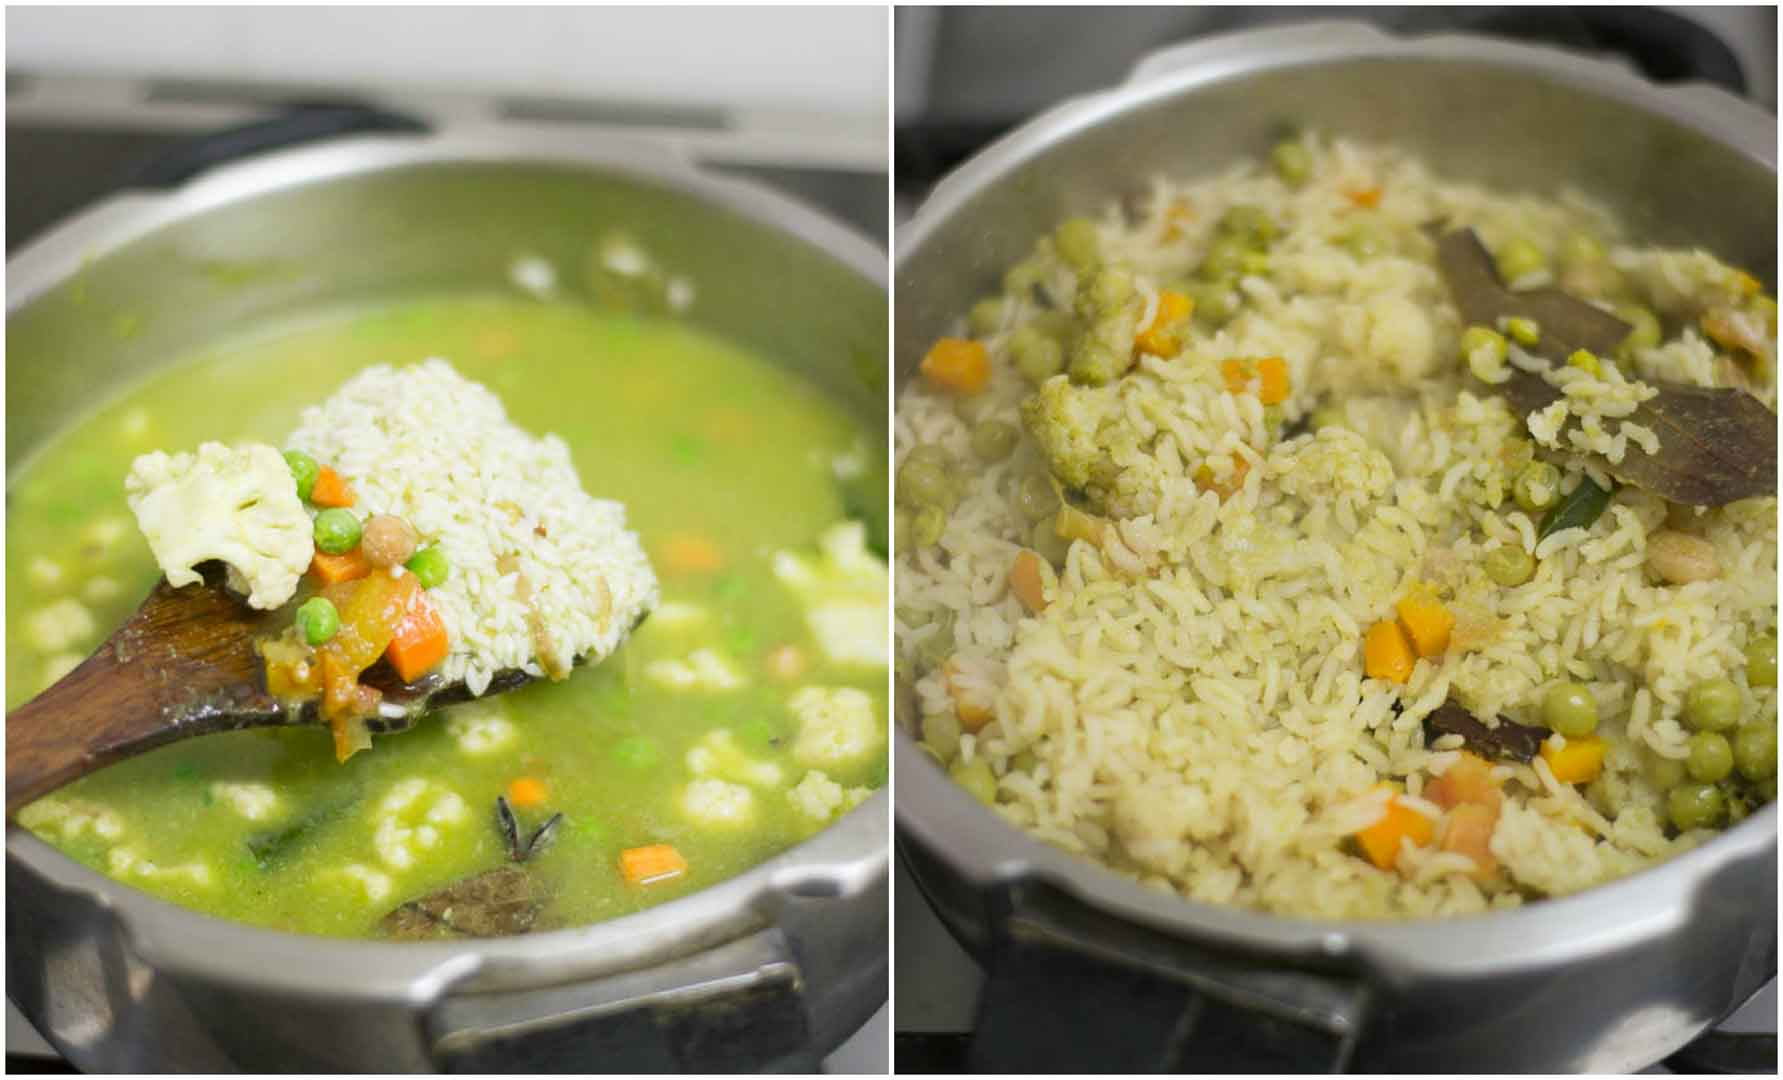 tarkari-palav-karnataka-vegetable-palav-recipe-9